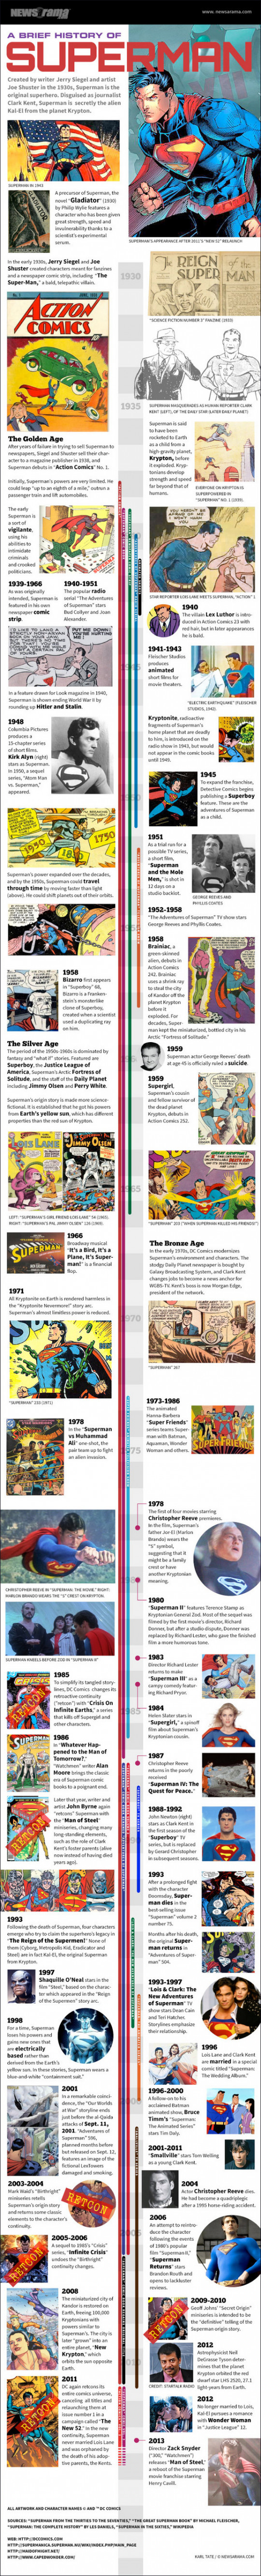 A Brief History of Superman